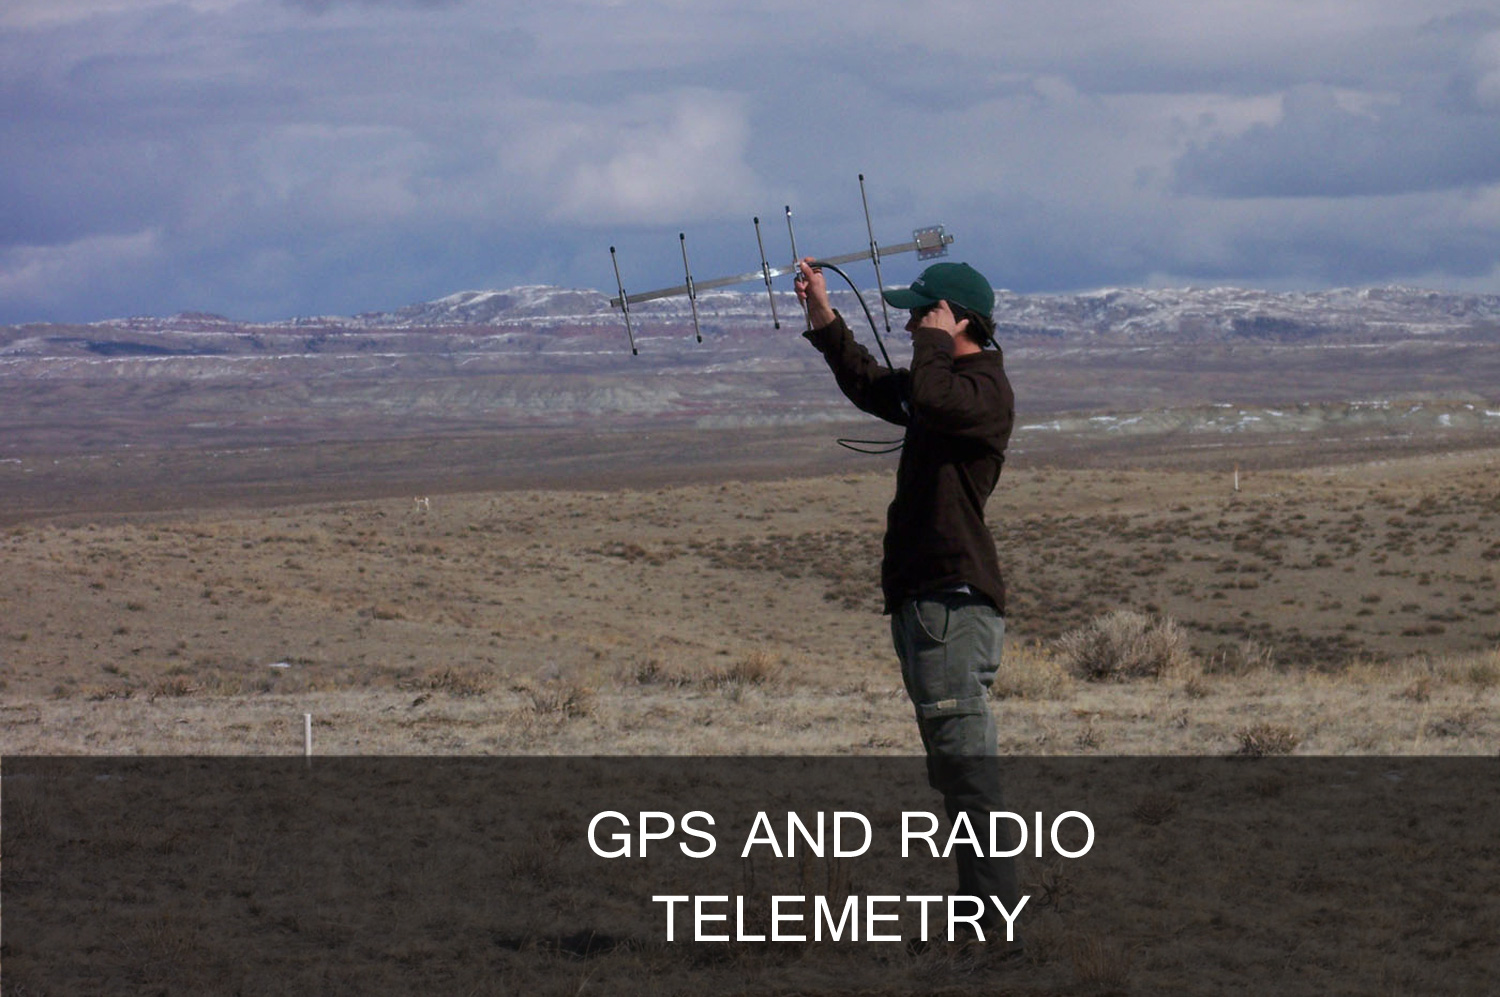 GPS and radio telemetry